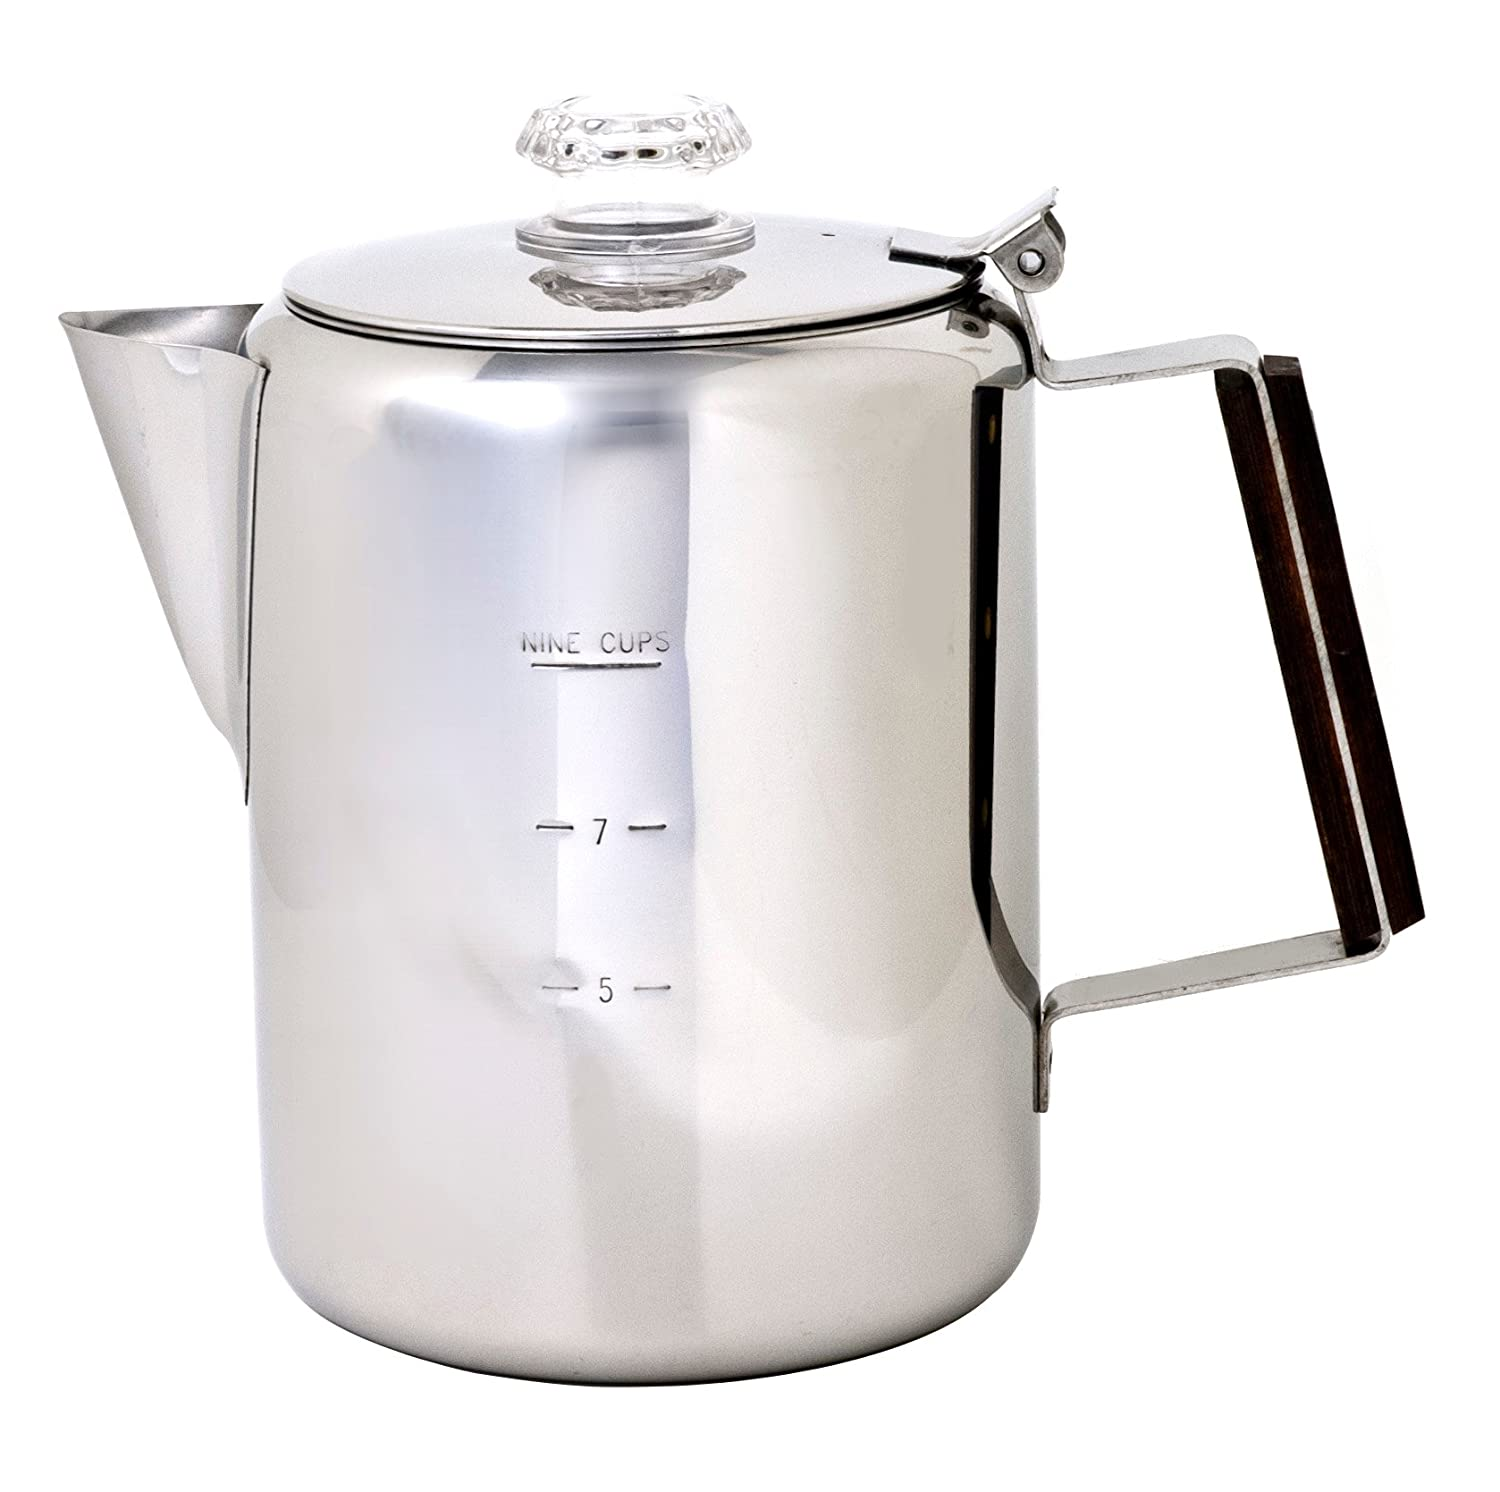 Chinook 41120 Timberline Coffee Percolator, Stainless Steel, 9 Cup